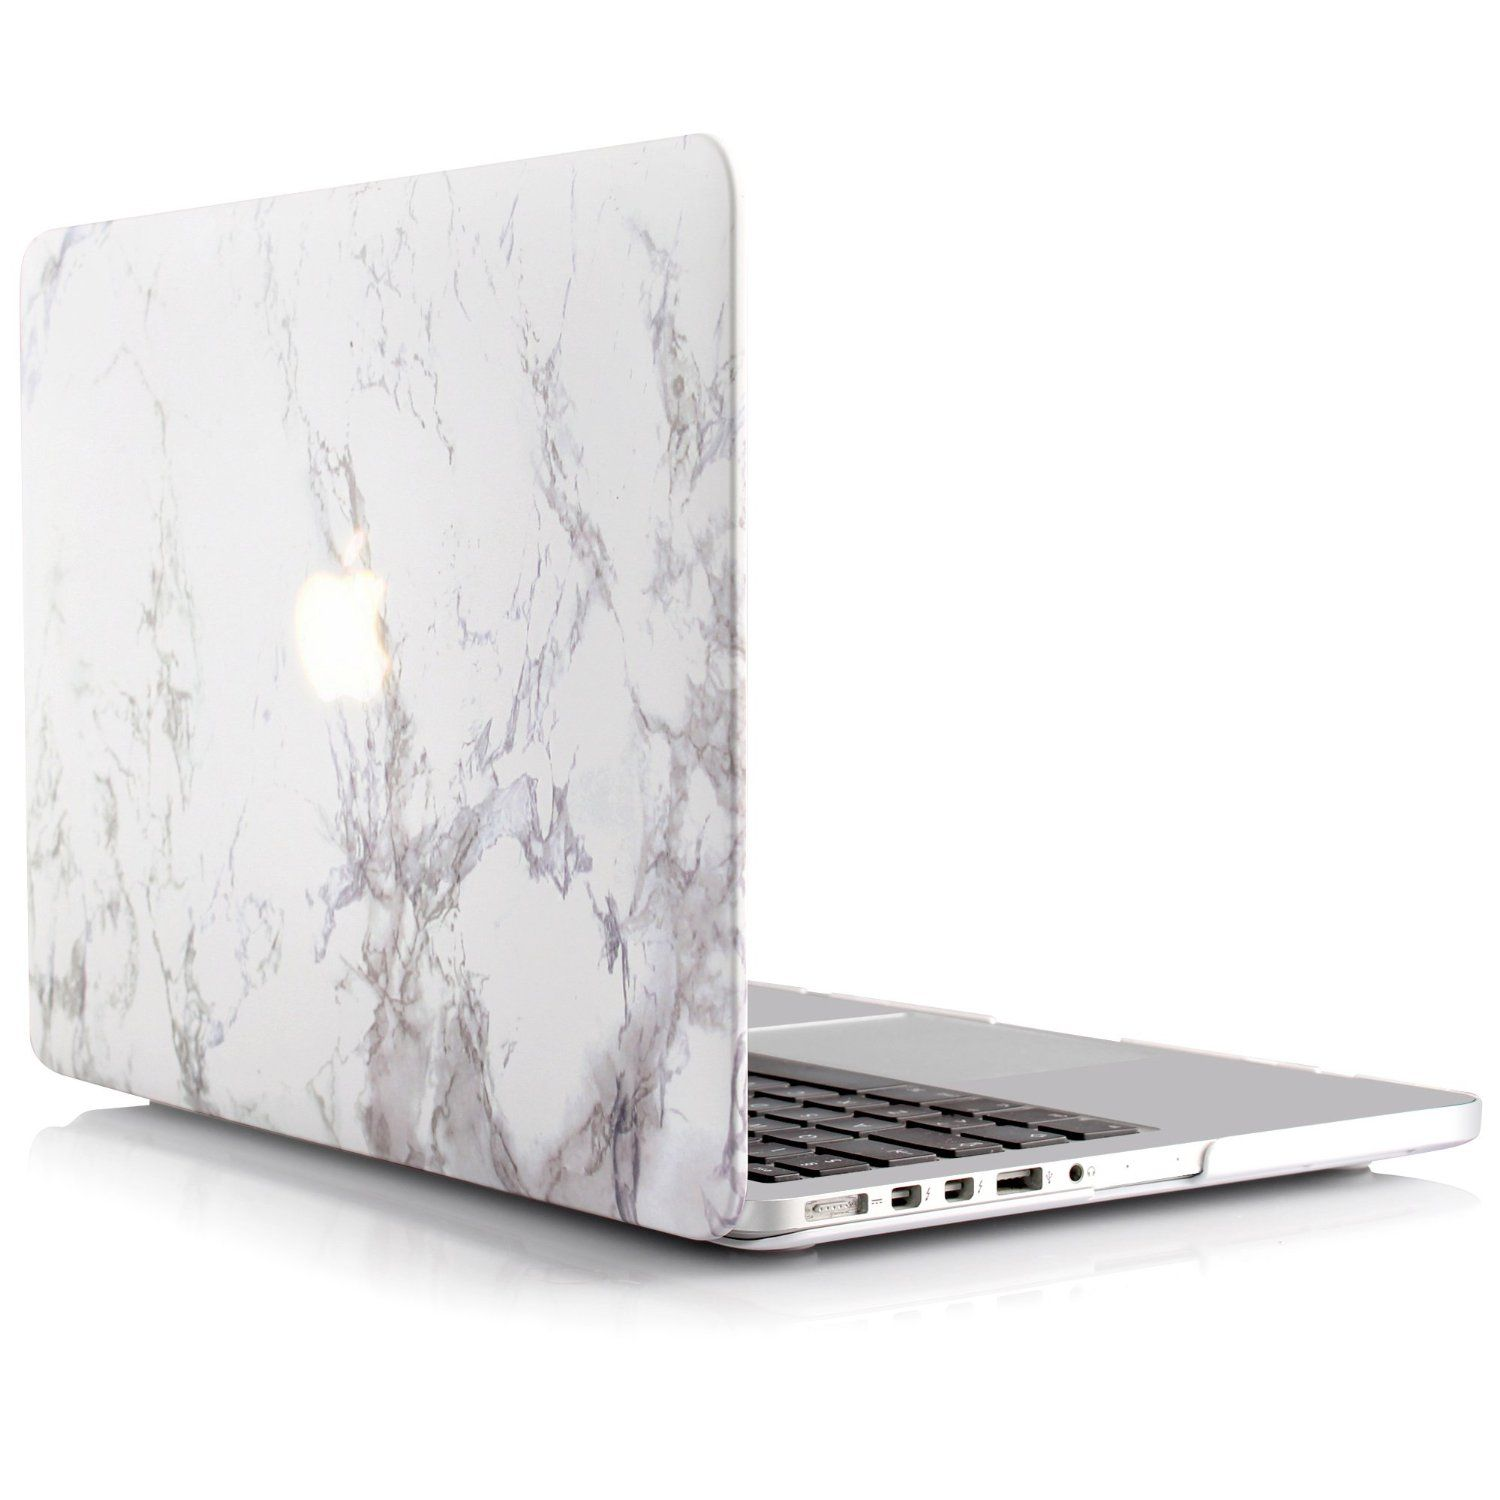 coque idoo en marbre macbook pro 13 pouces retina high tech wish list pinterest. Black Bedroom Furniture Sets. Home Design Ideas